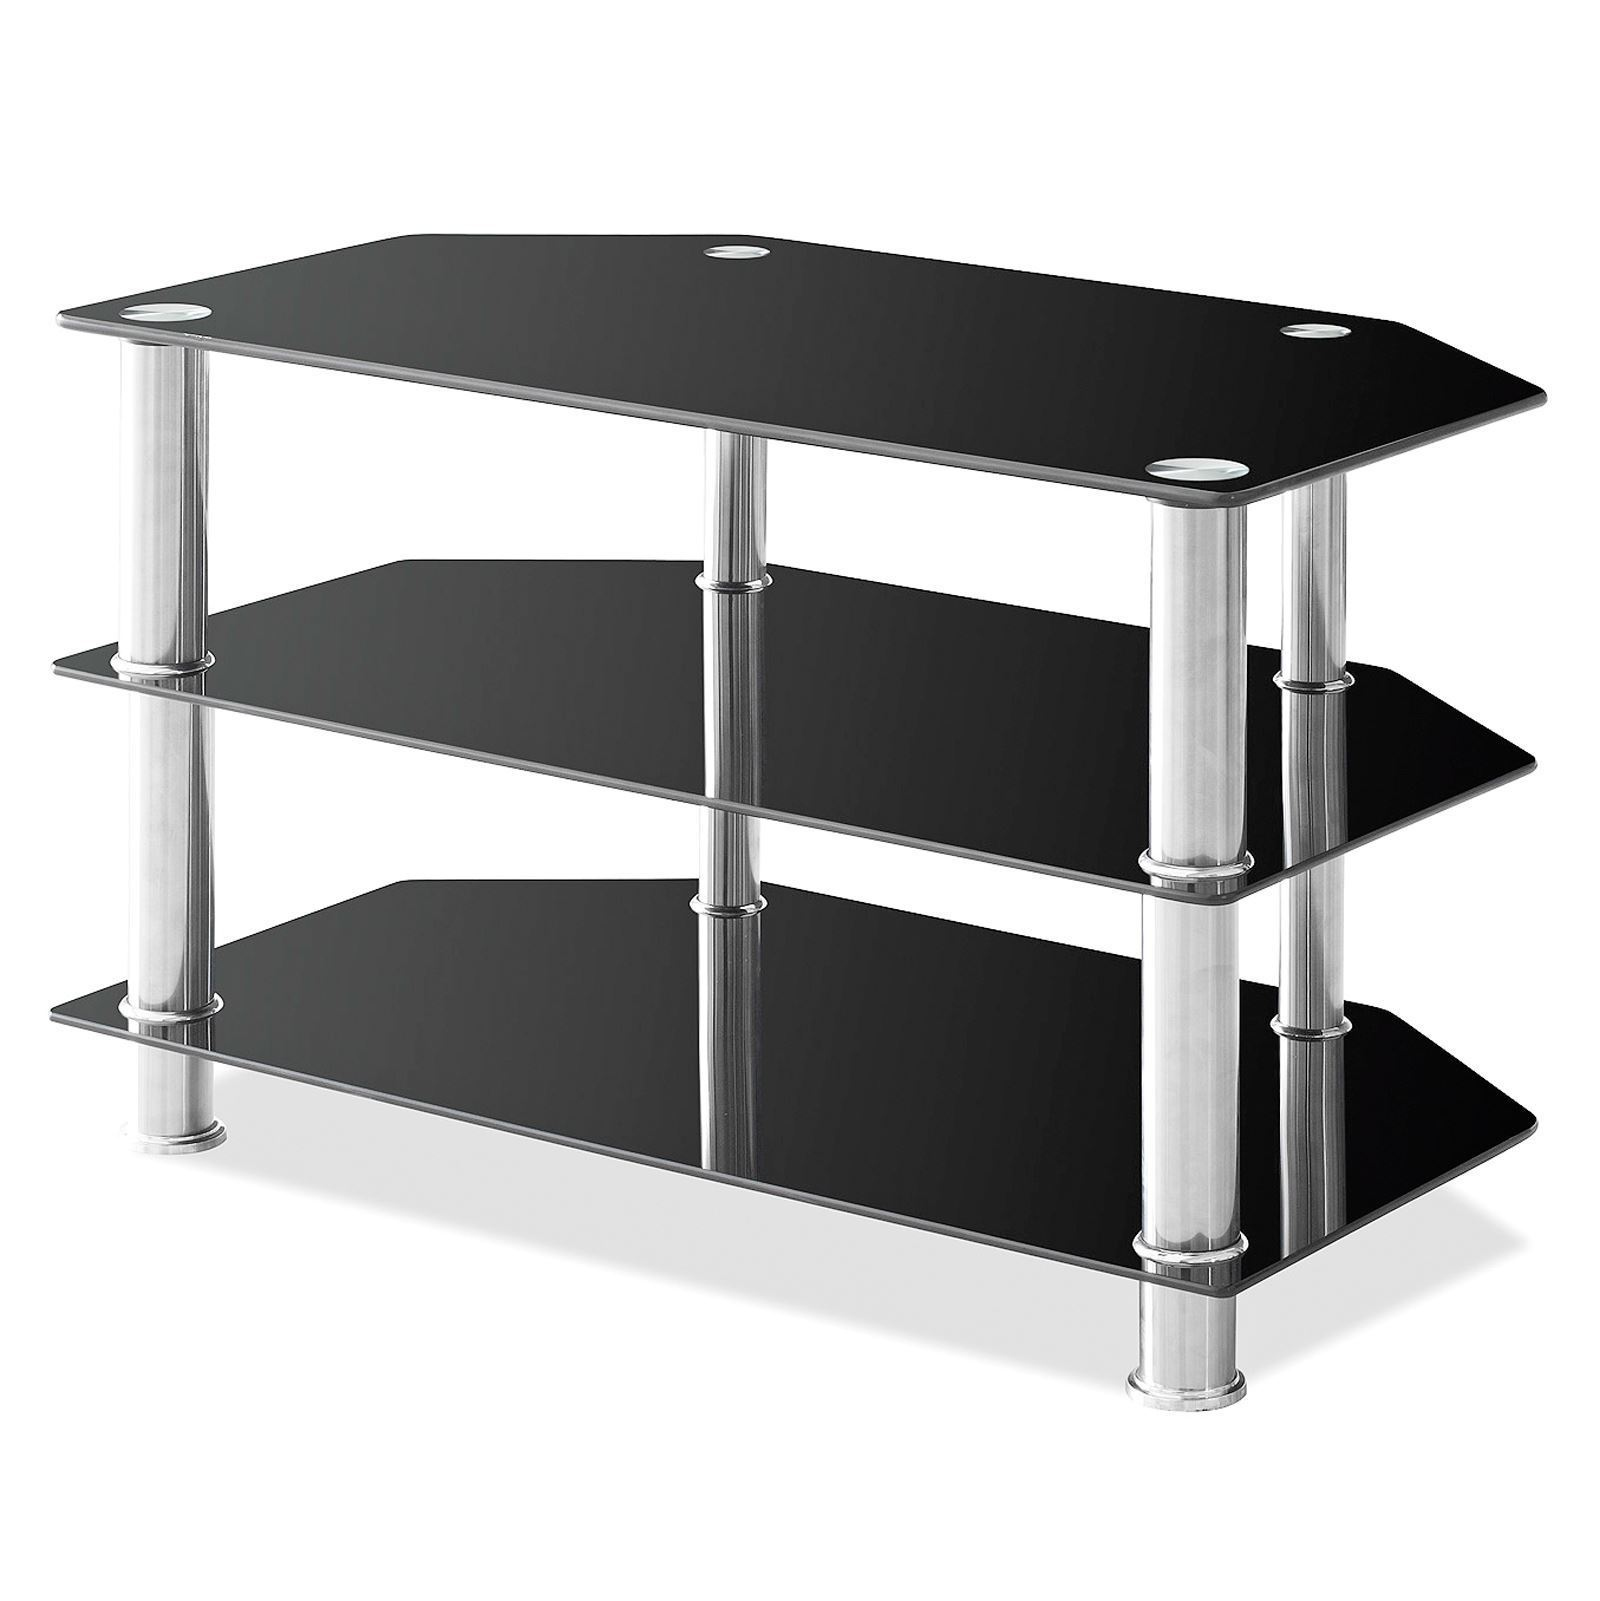 Glass Shelf Tv Unit Dvd Black 2 3 4 Tier Stainless Steel Living  # Meuble Tv Noir En Verre